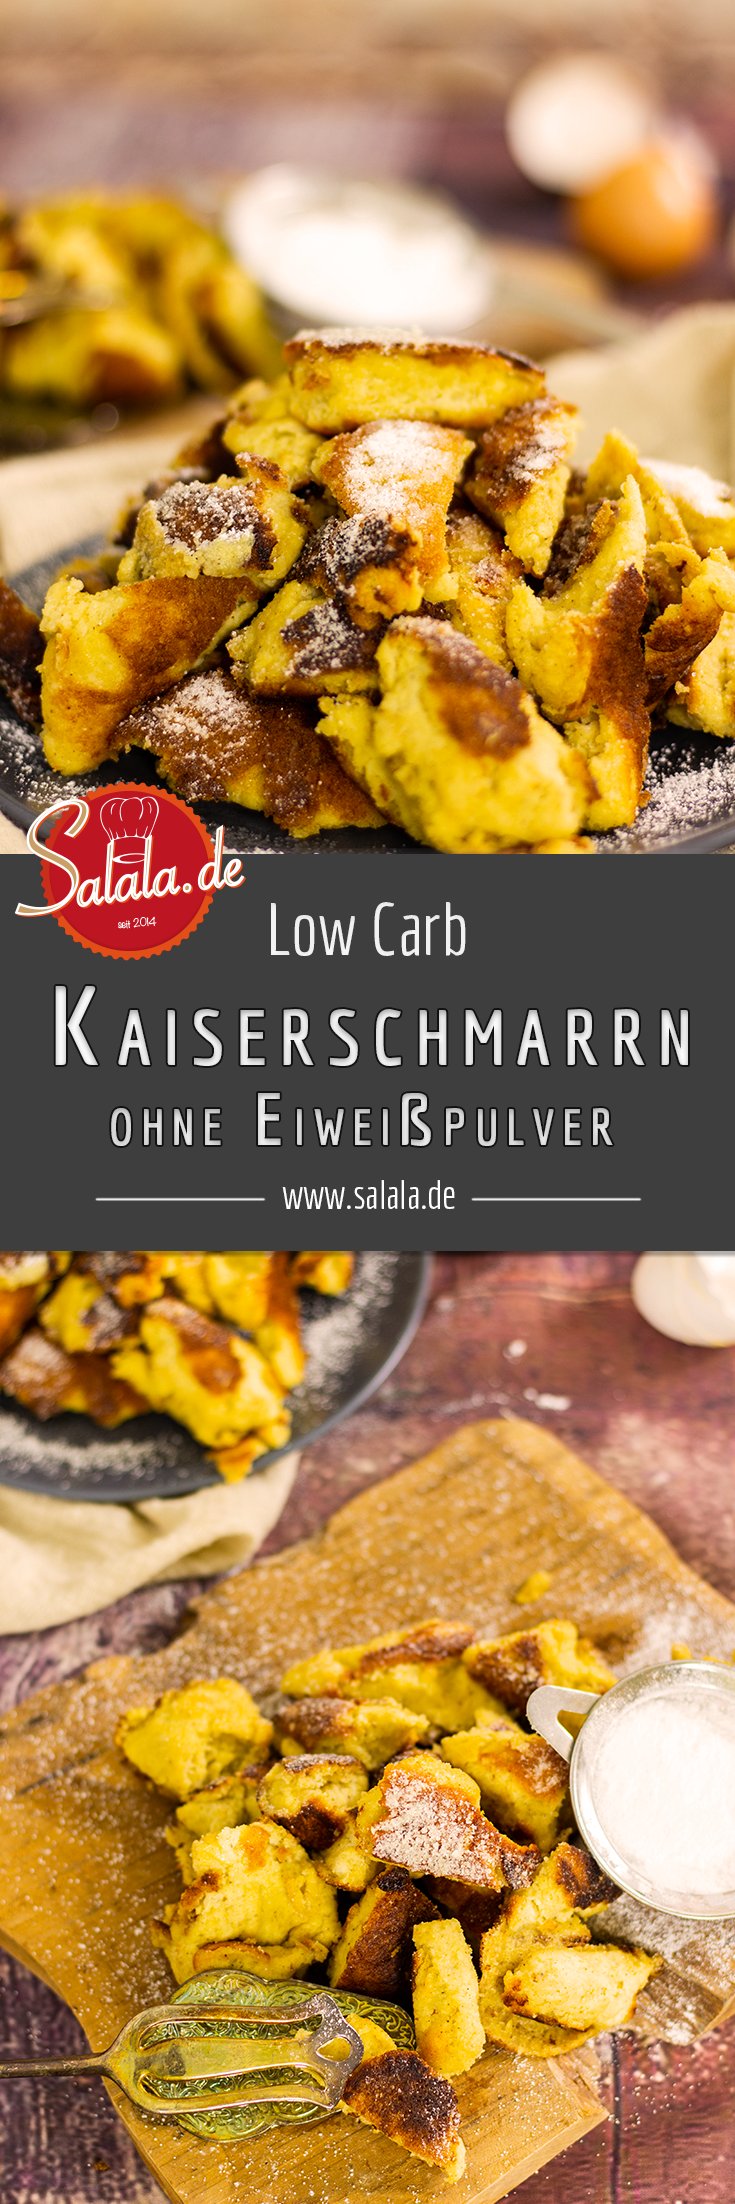 Photo of Kaiserschmarrn without flour | salala.de – Low carb made easy